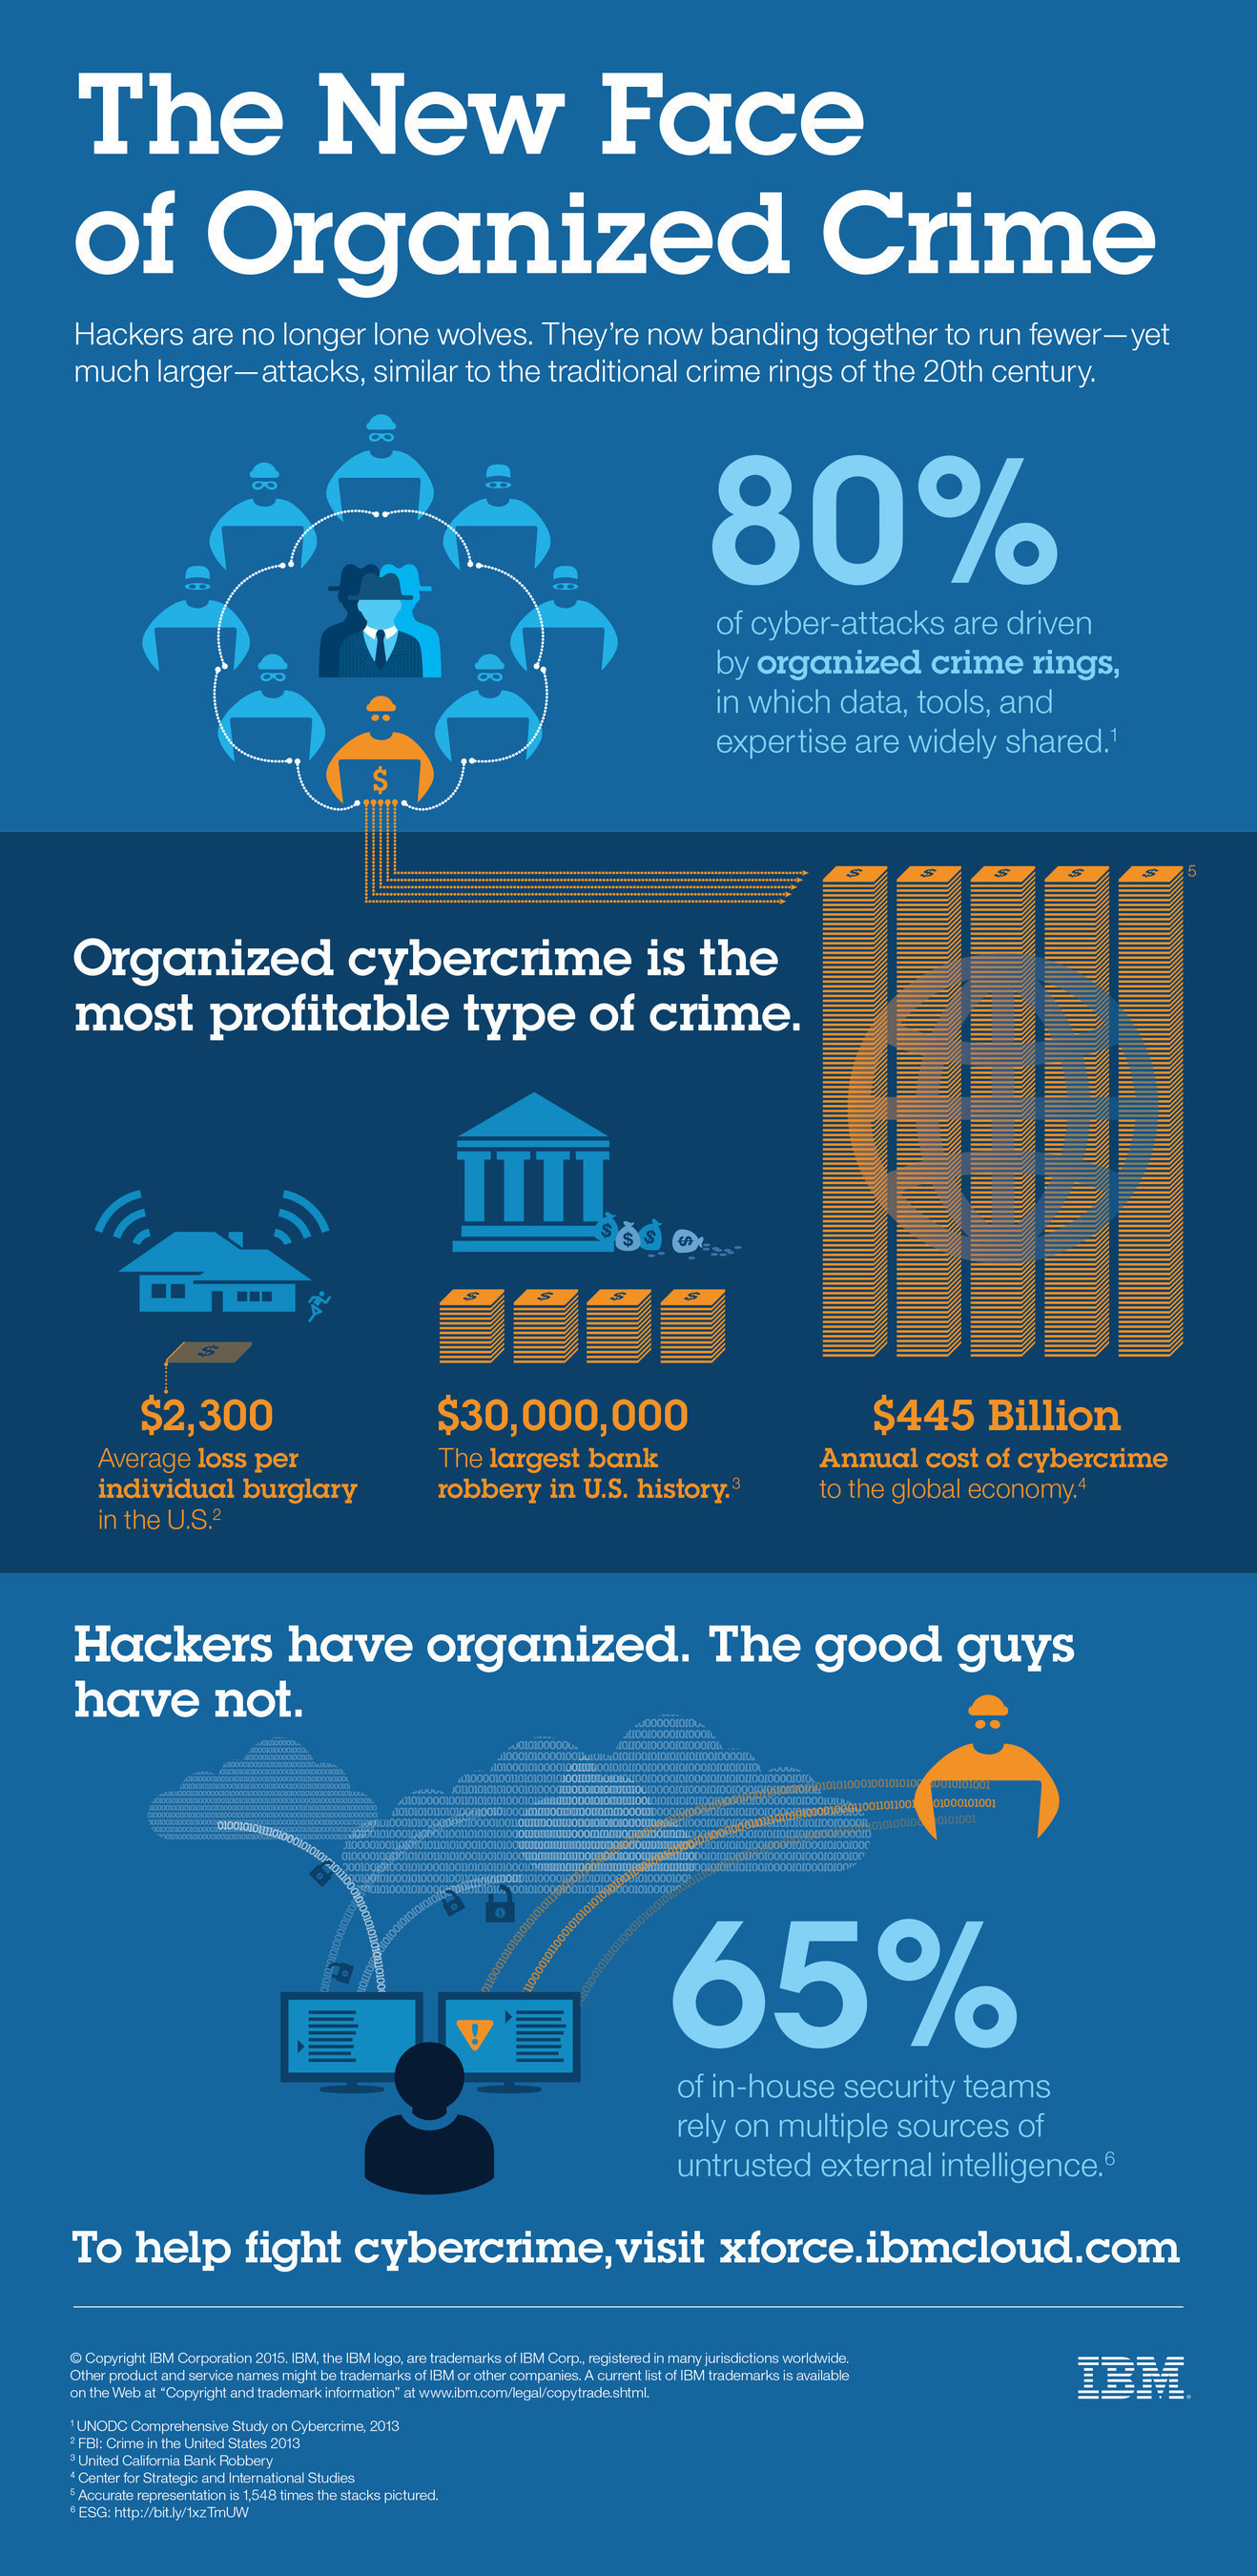 Cybercrime is the new - and most profitable - type of organized crime.